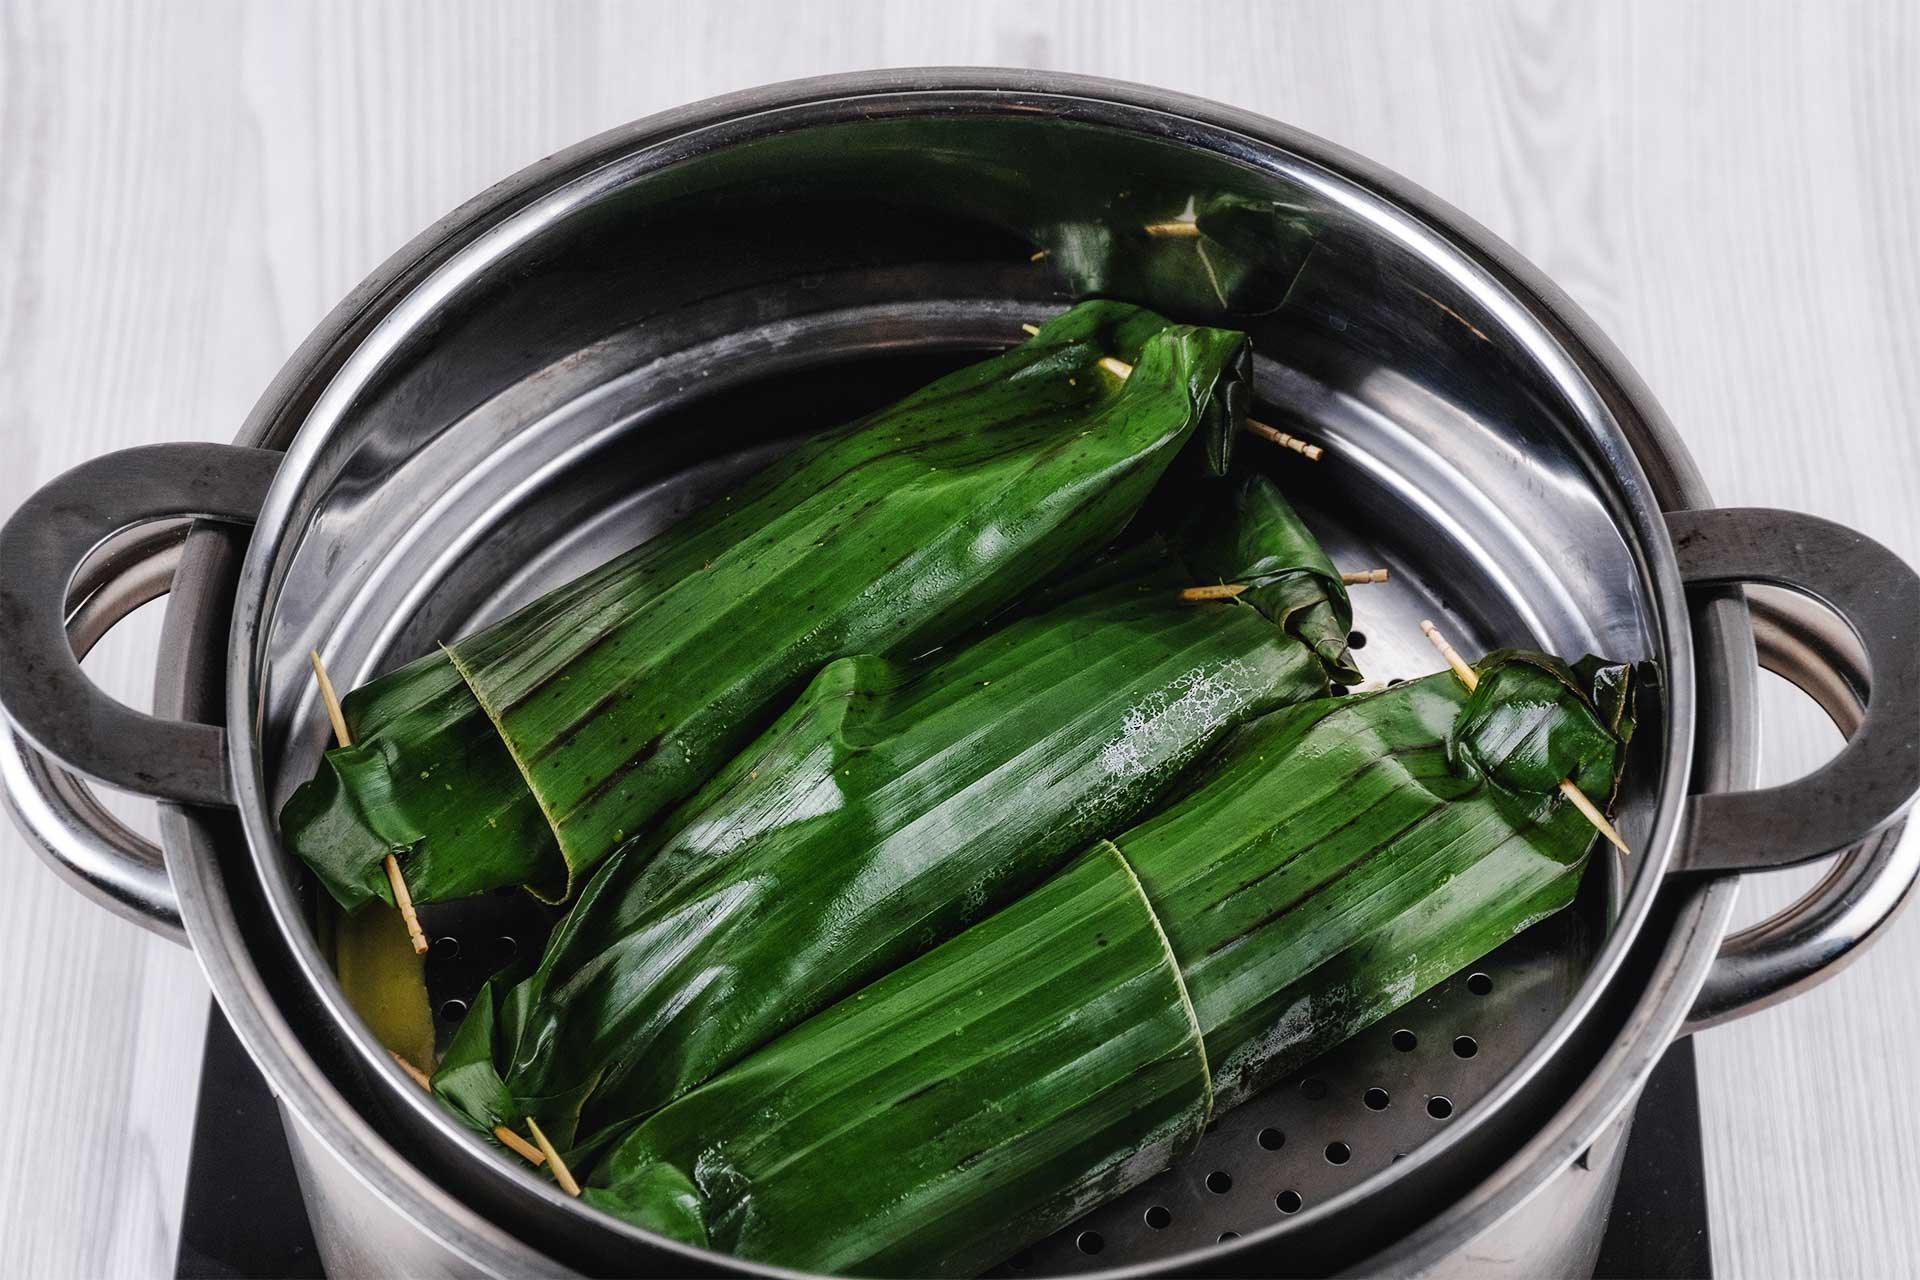 Wrap with banana leaves